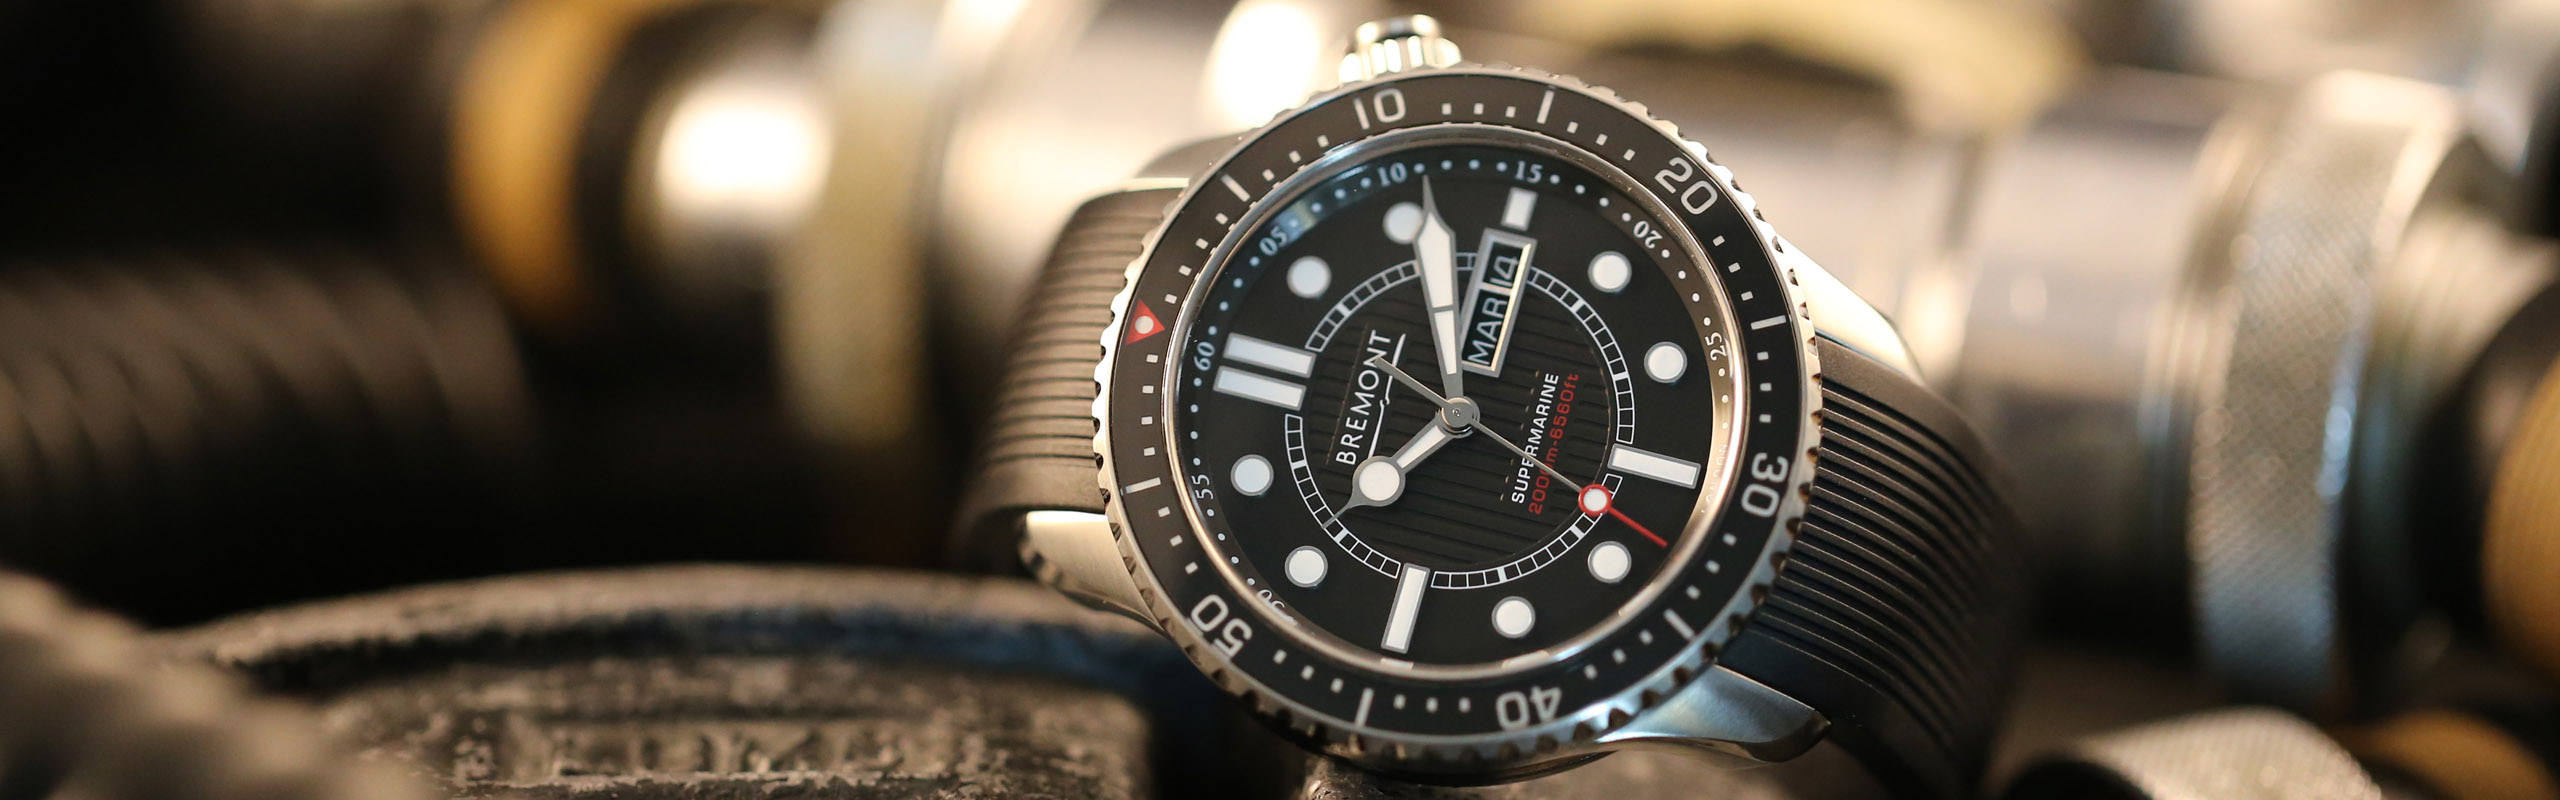 Bremont_Supermarine_2000_2015_Header_6